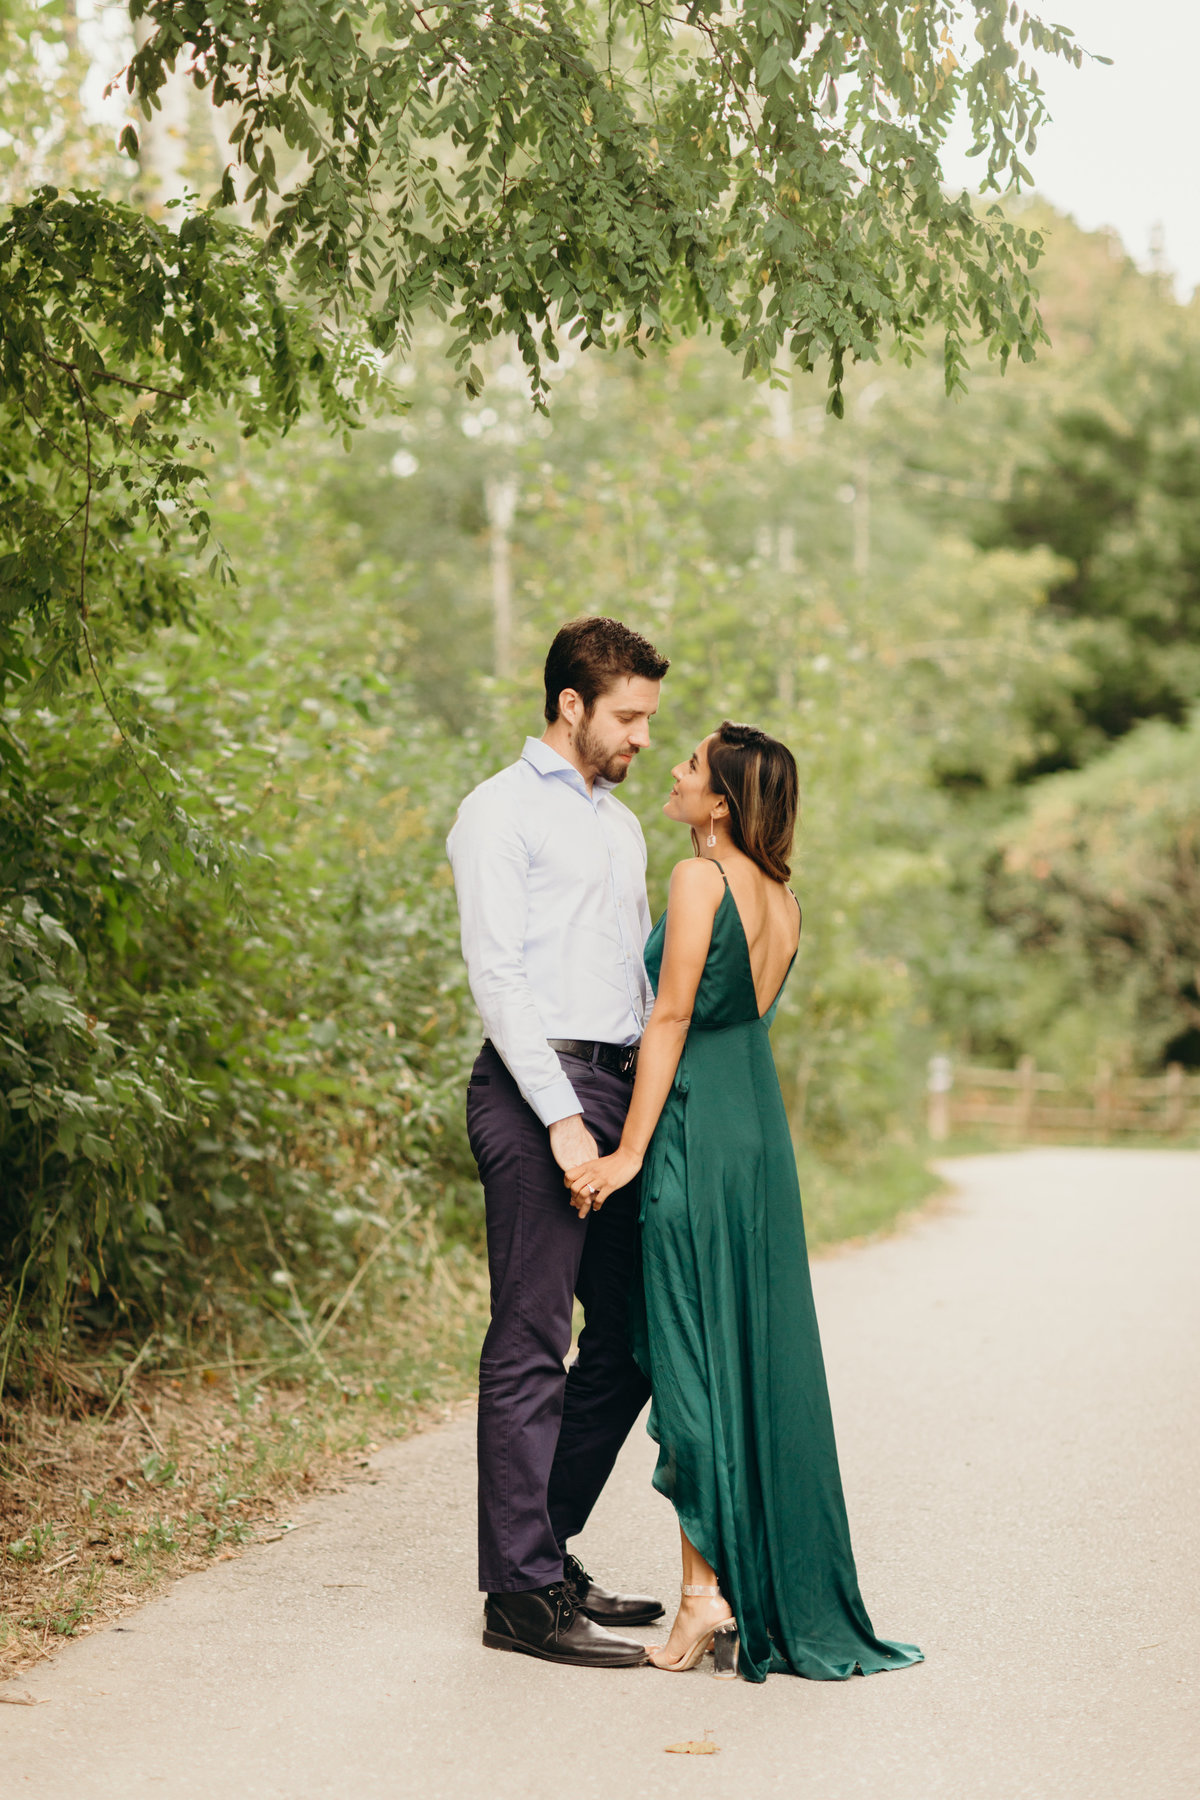 LINDSIEGREY_JASPREET_CHRIS_ENGAGEMENT_022